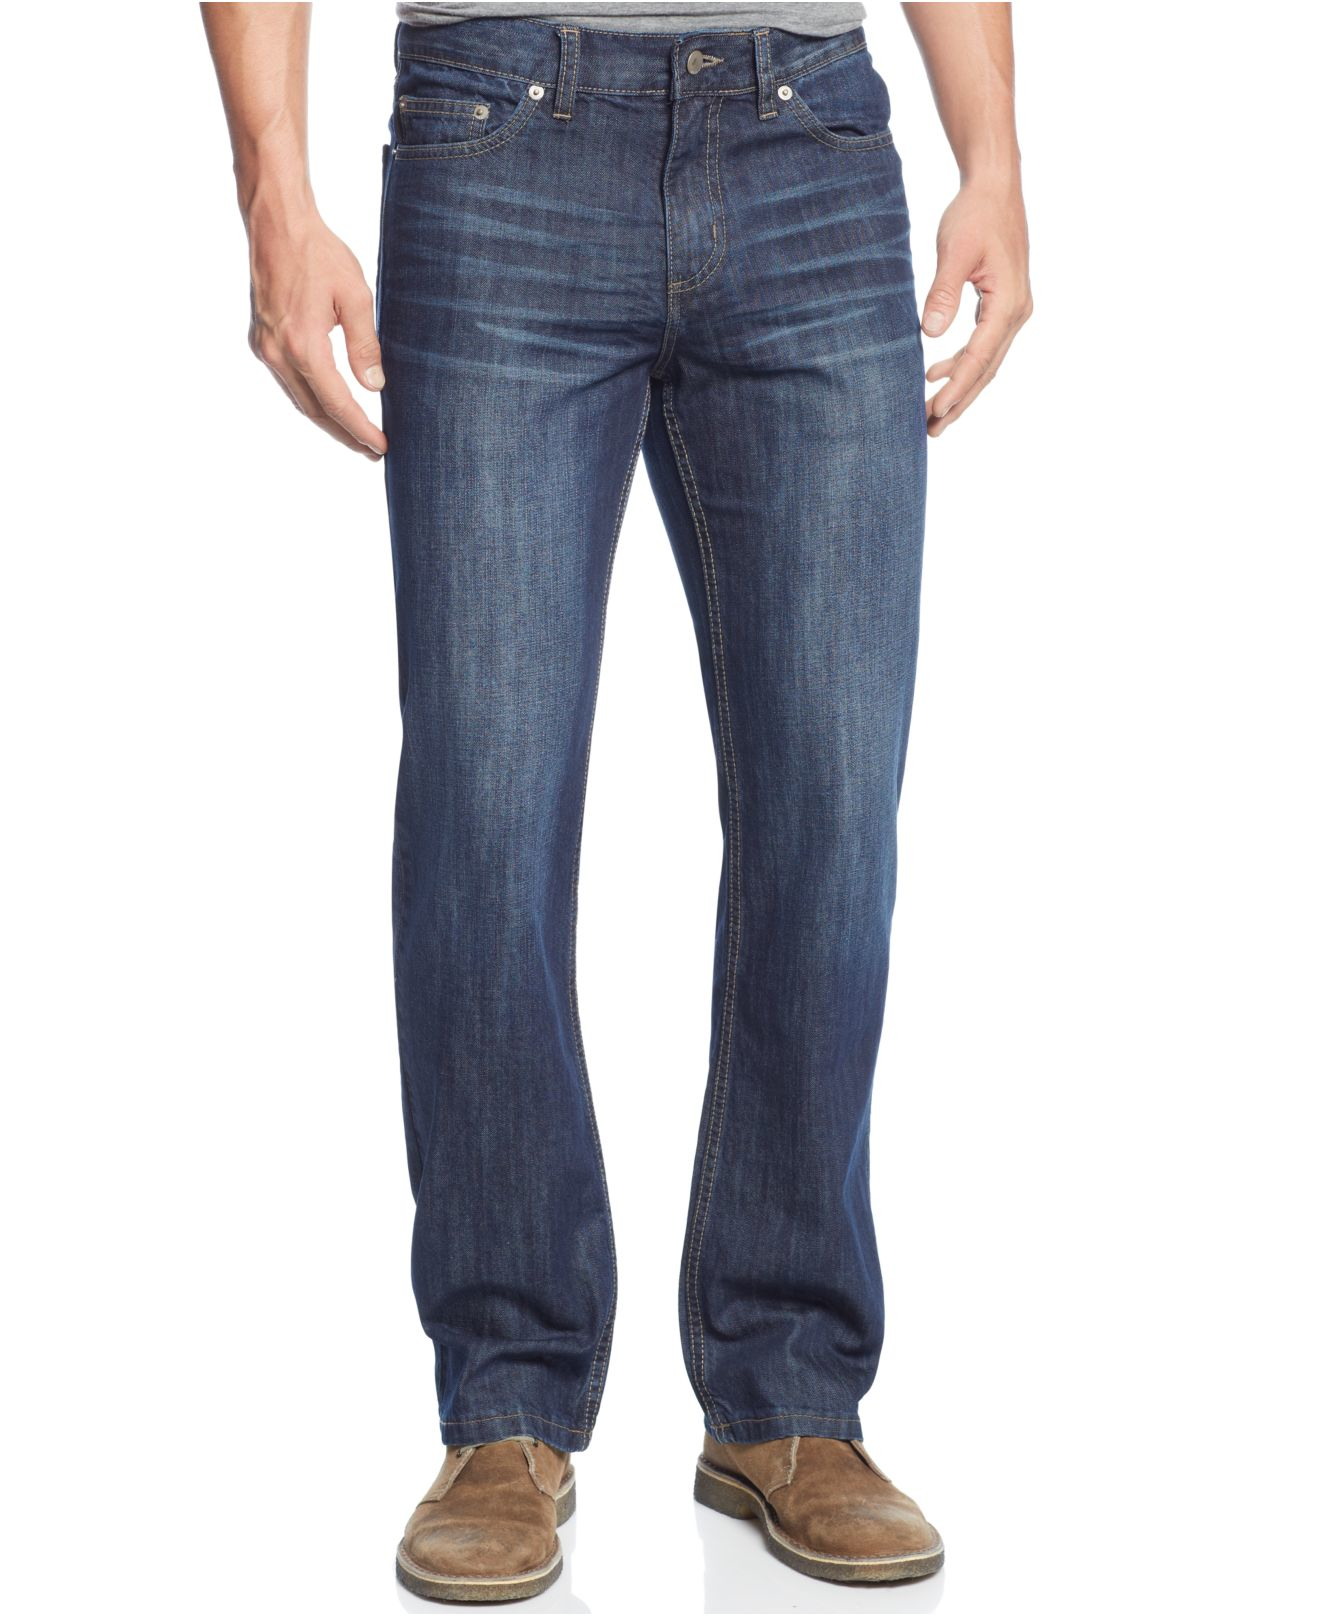 MEN'S BIG & TALL SHOP BY BRAND SHOES HOME & UNDER RECENTLY REDUCED WHAT'S NEW Home. WOMEN'S PLUS SIZE Tall Low-Rise Boot-Cut Jeans. $ Clearance. More Colors Less. Woman Within. Tall Straight Leg Stretch Corduroy Jeans. .